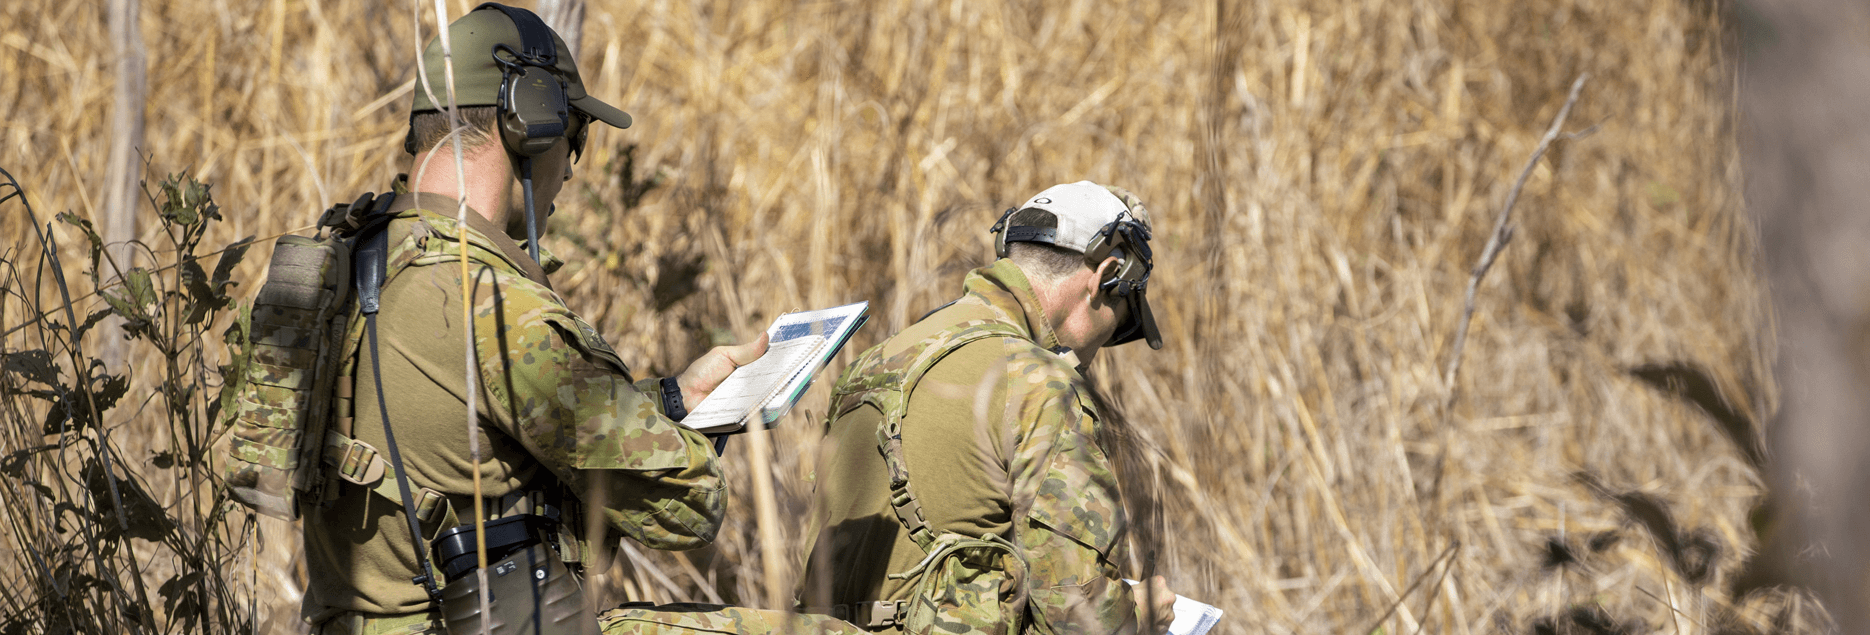 Army in the field